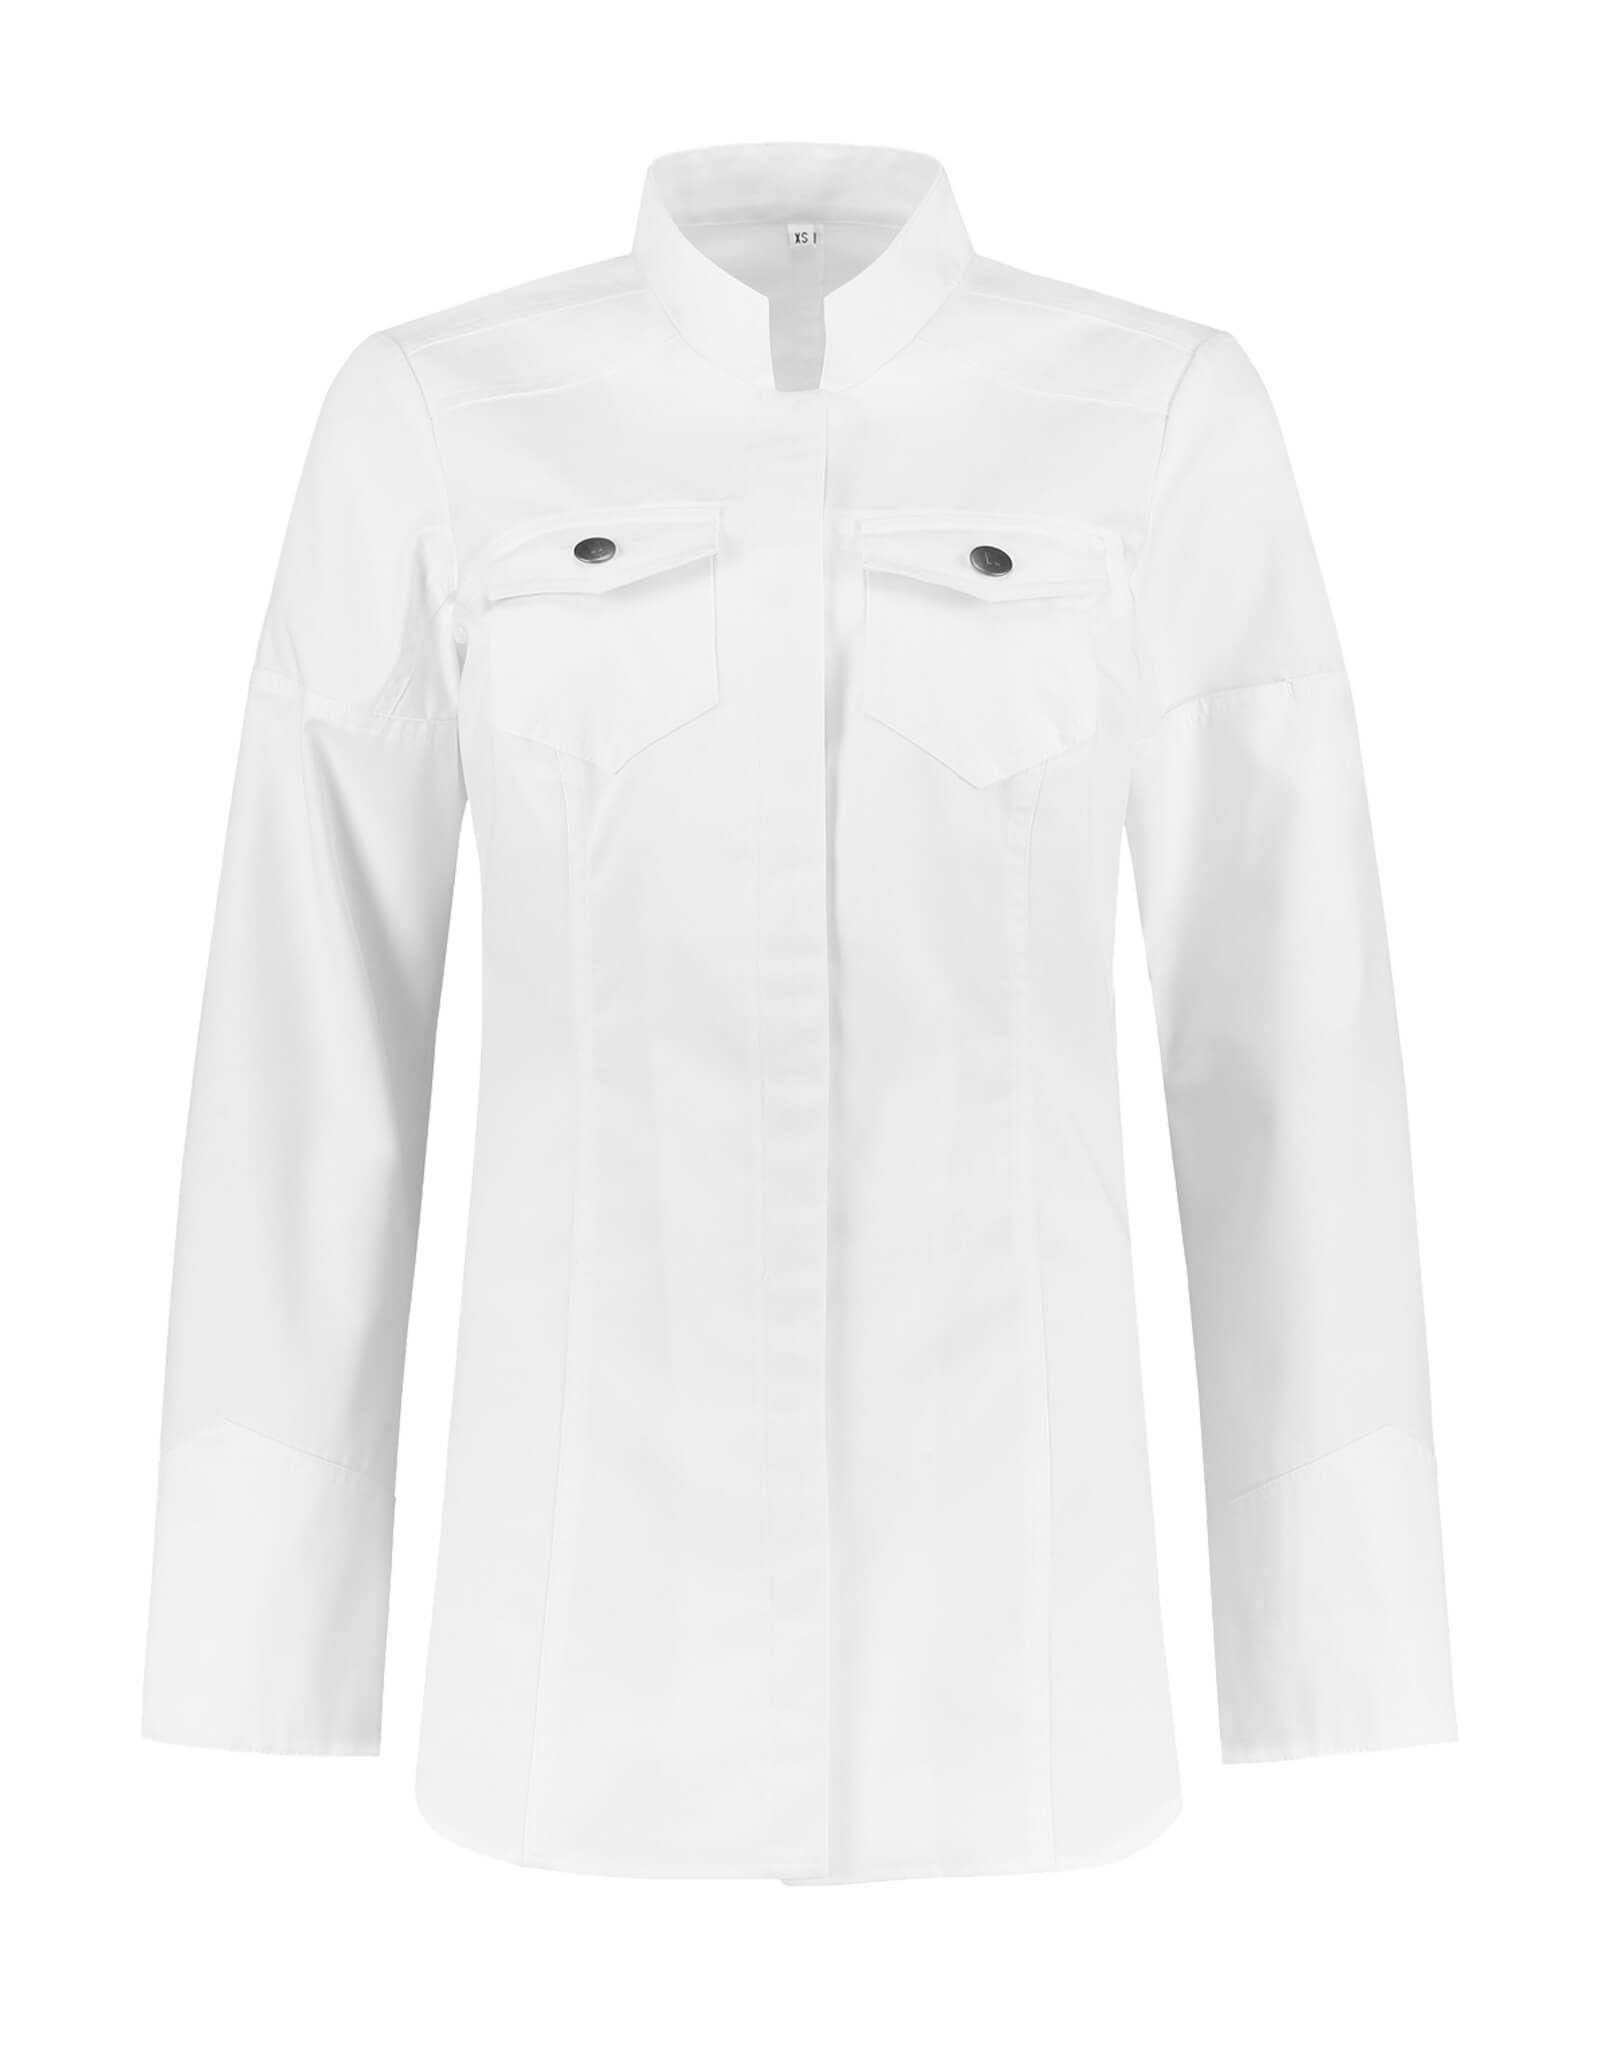 Veste Cuisine Ladies Texas Blanc